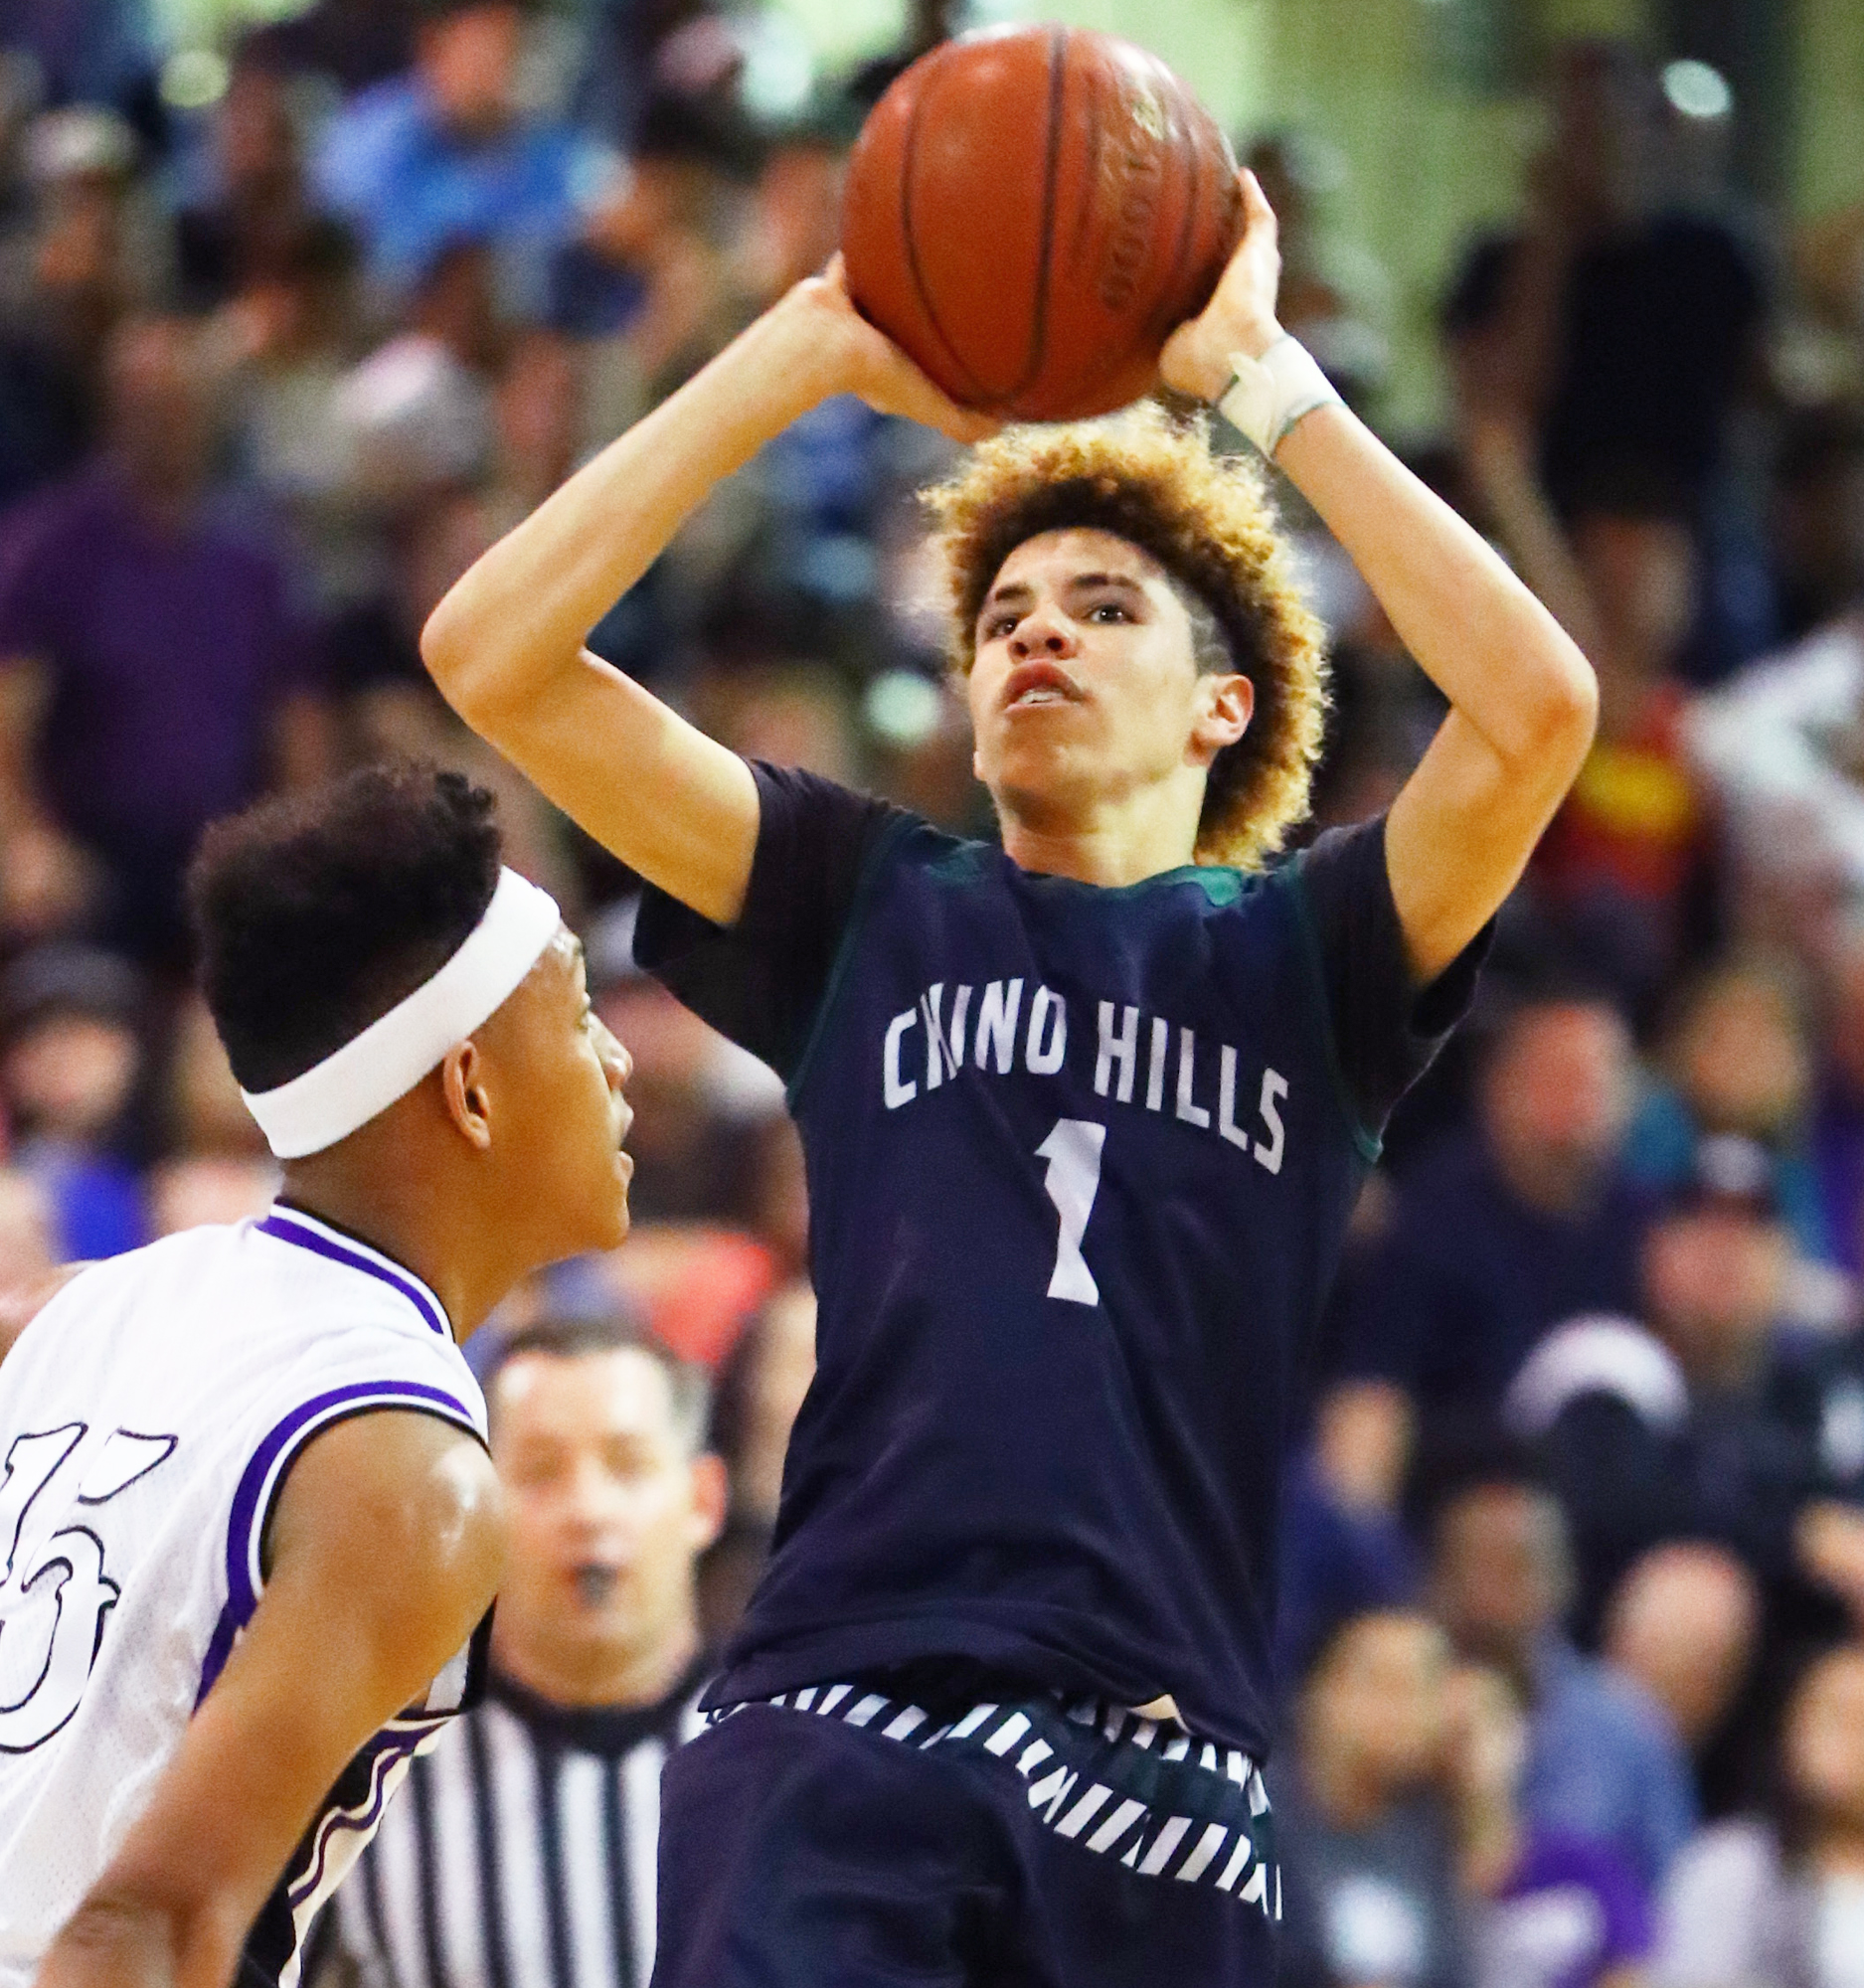 The extraordinary life of LaMelo Ball